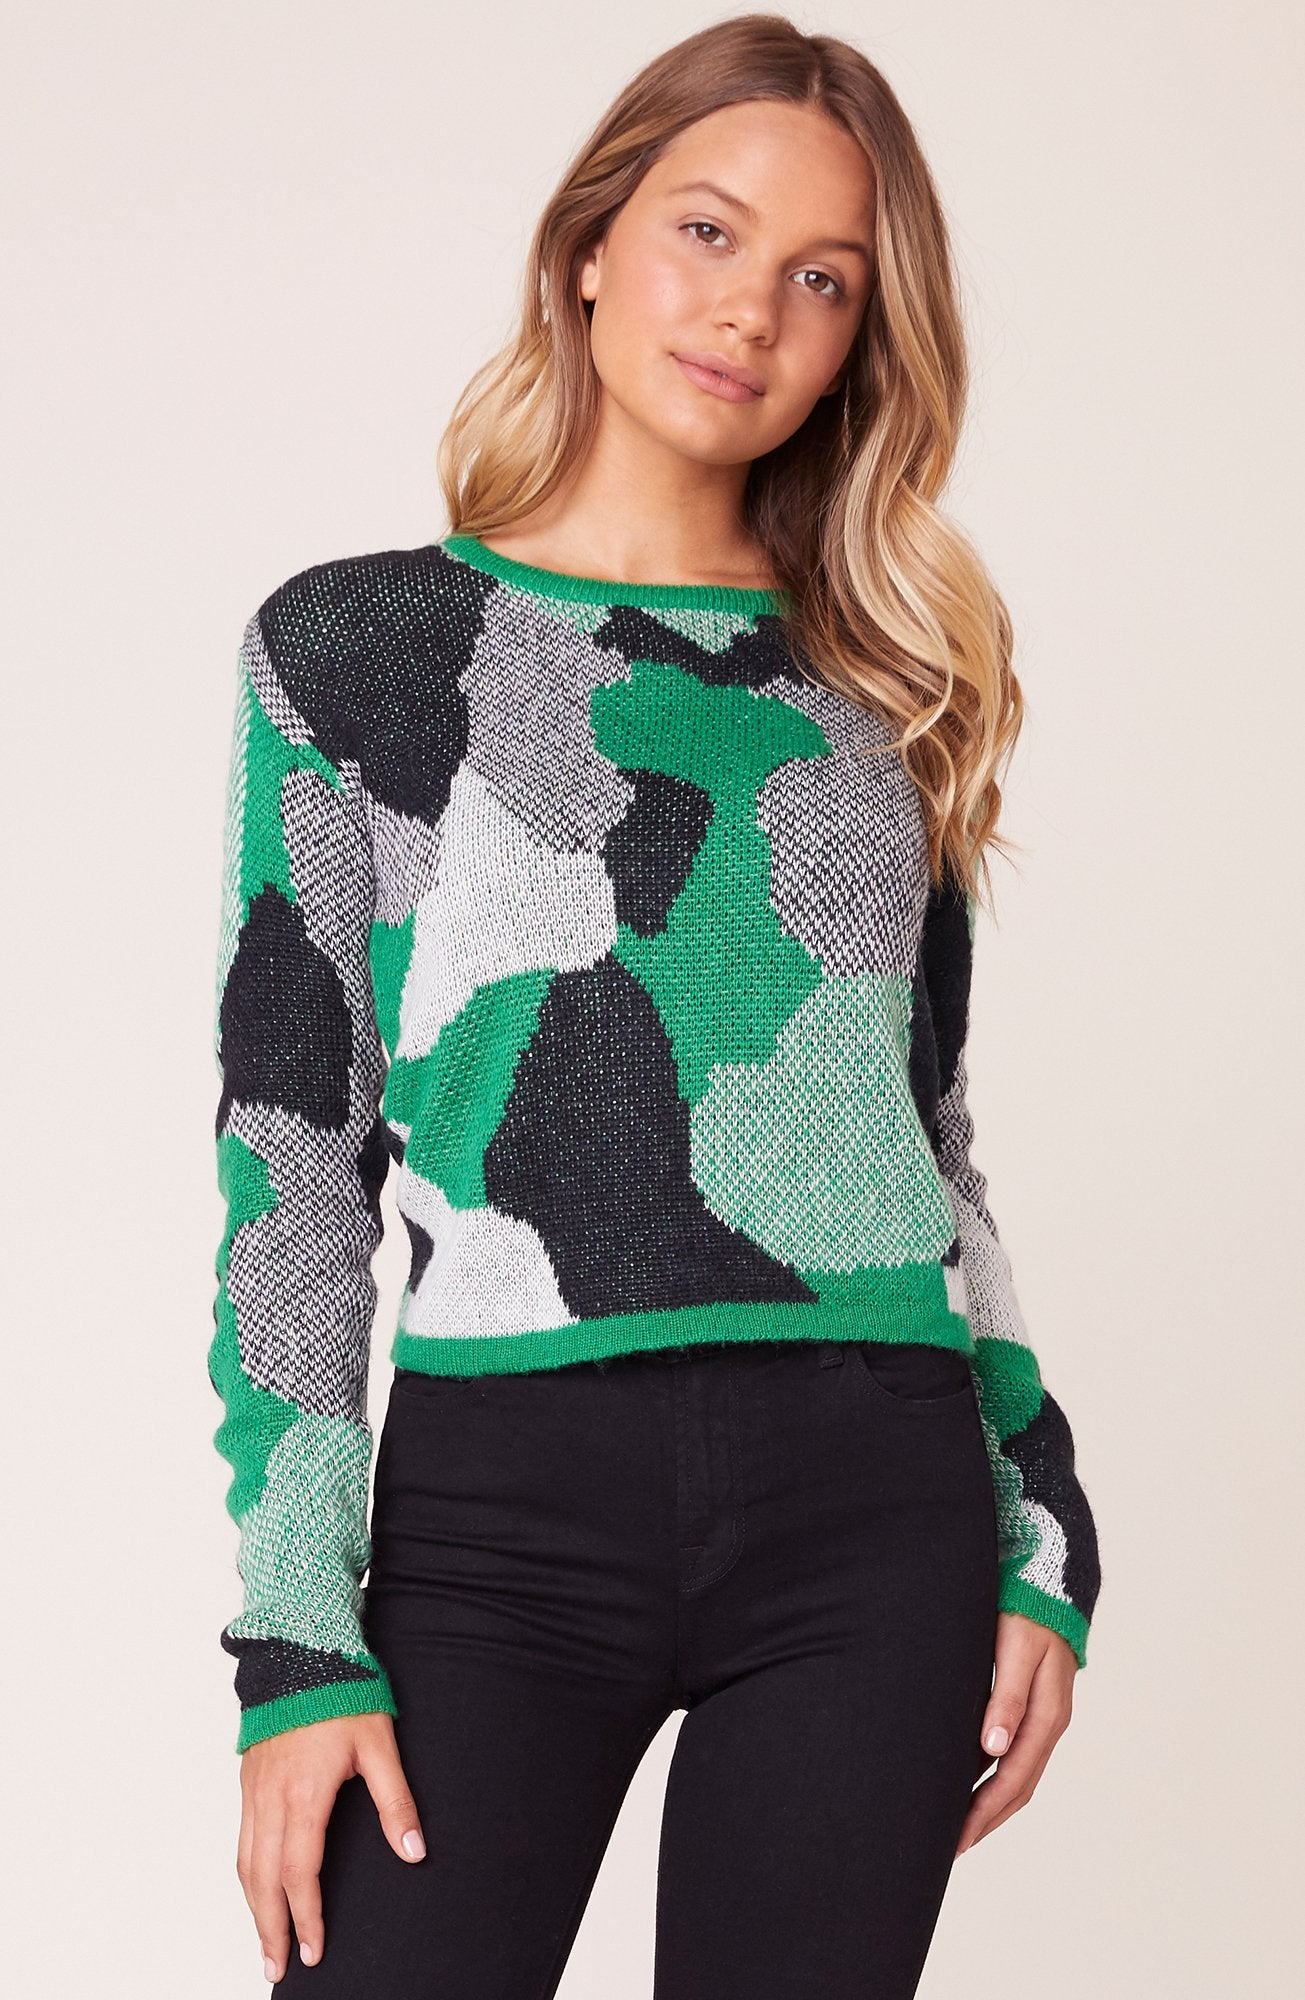 BB Dakota Blending Abstract Camo Sweater Bright Green BJ306629